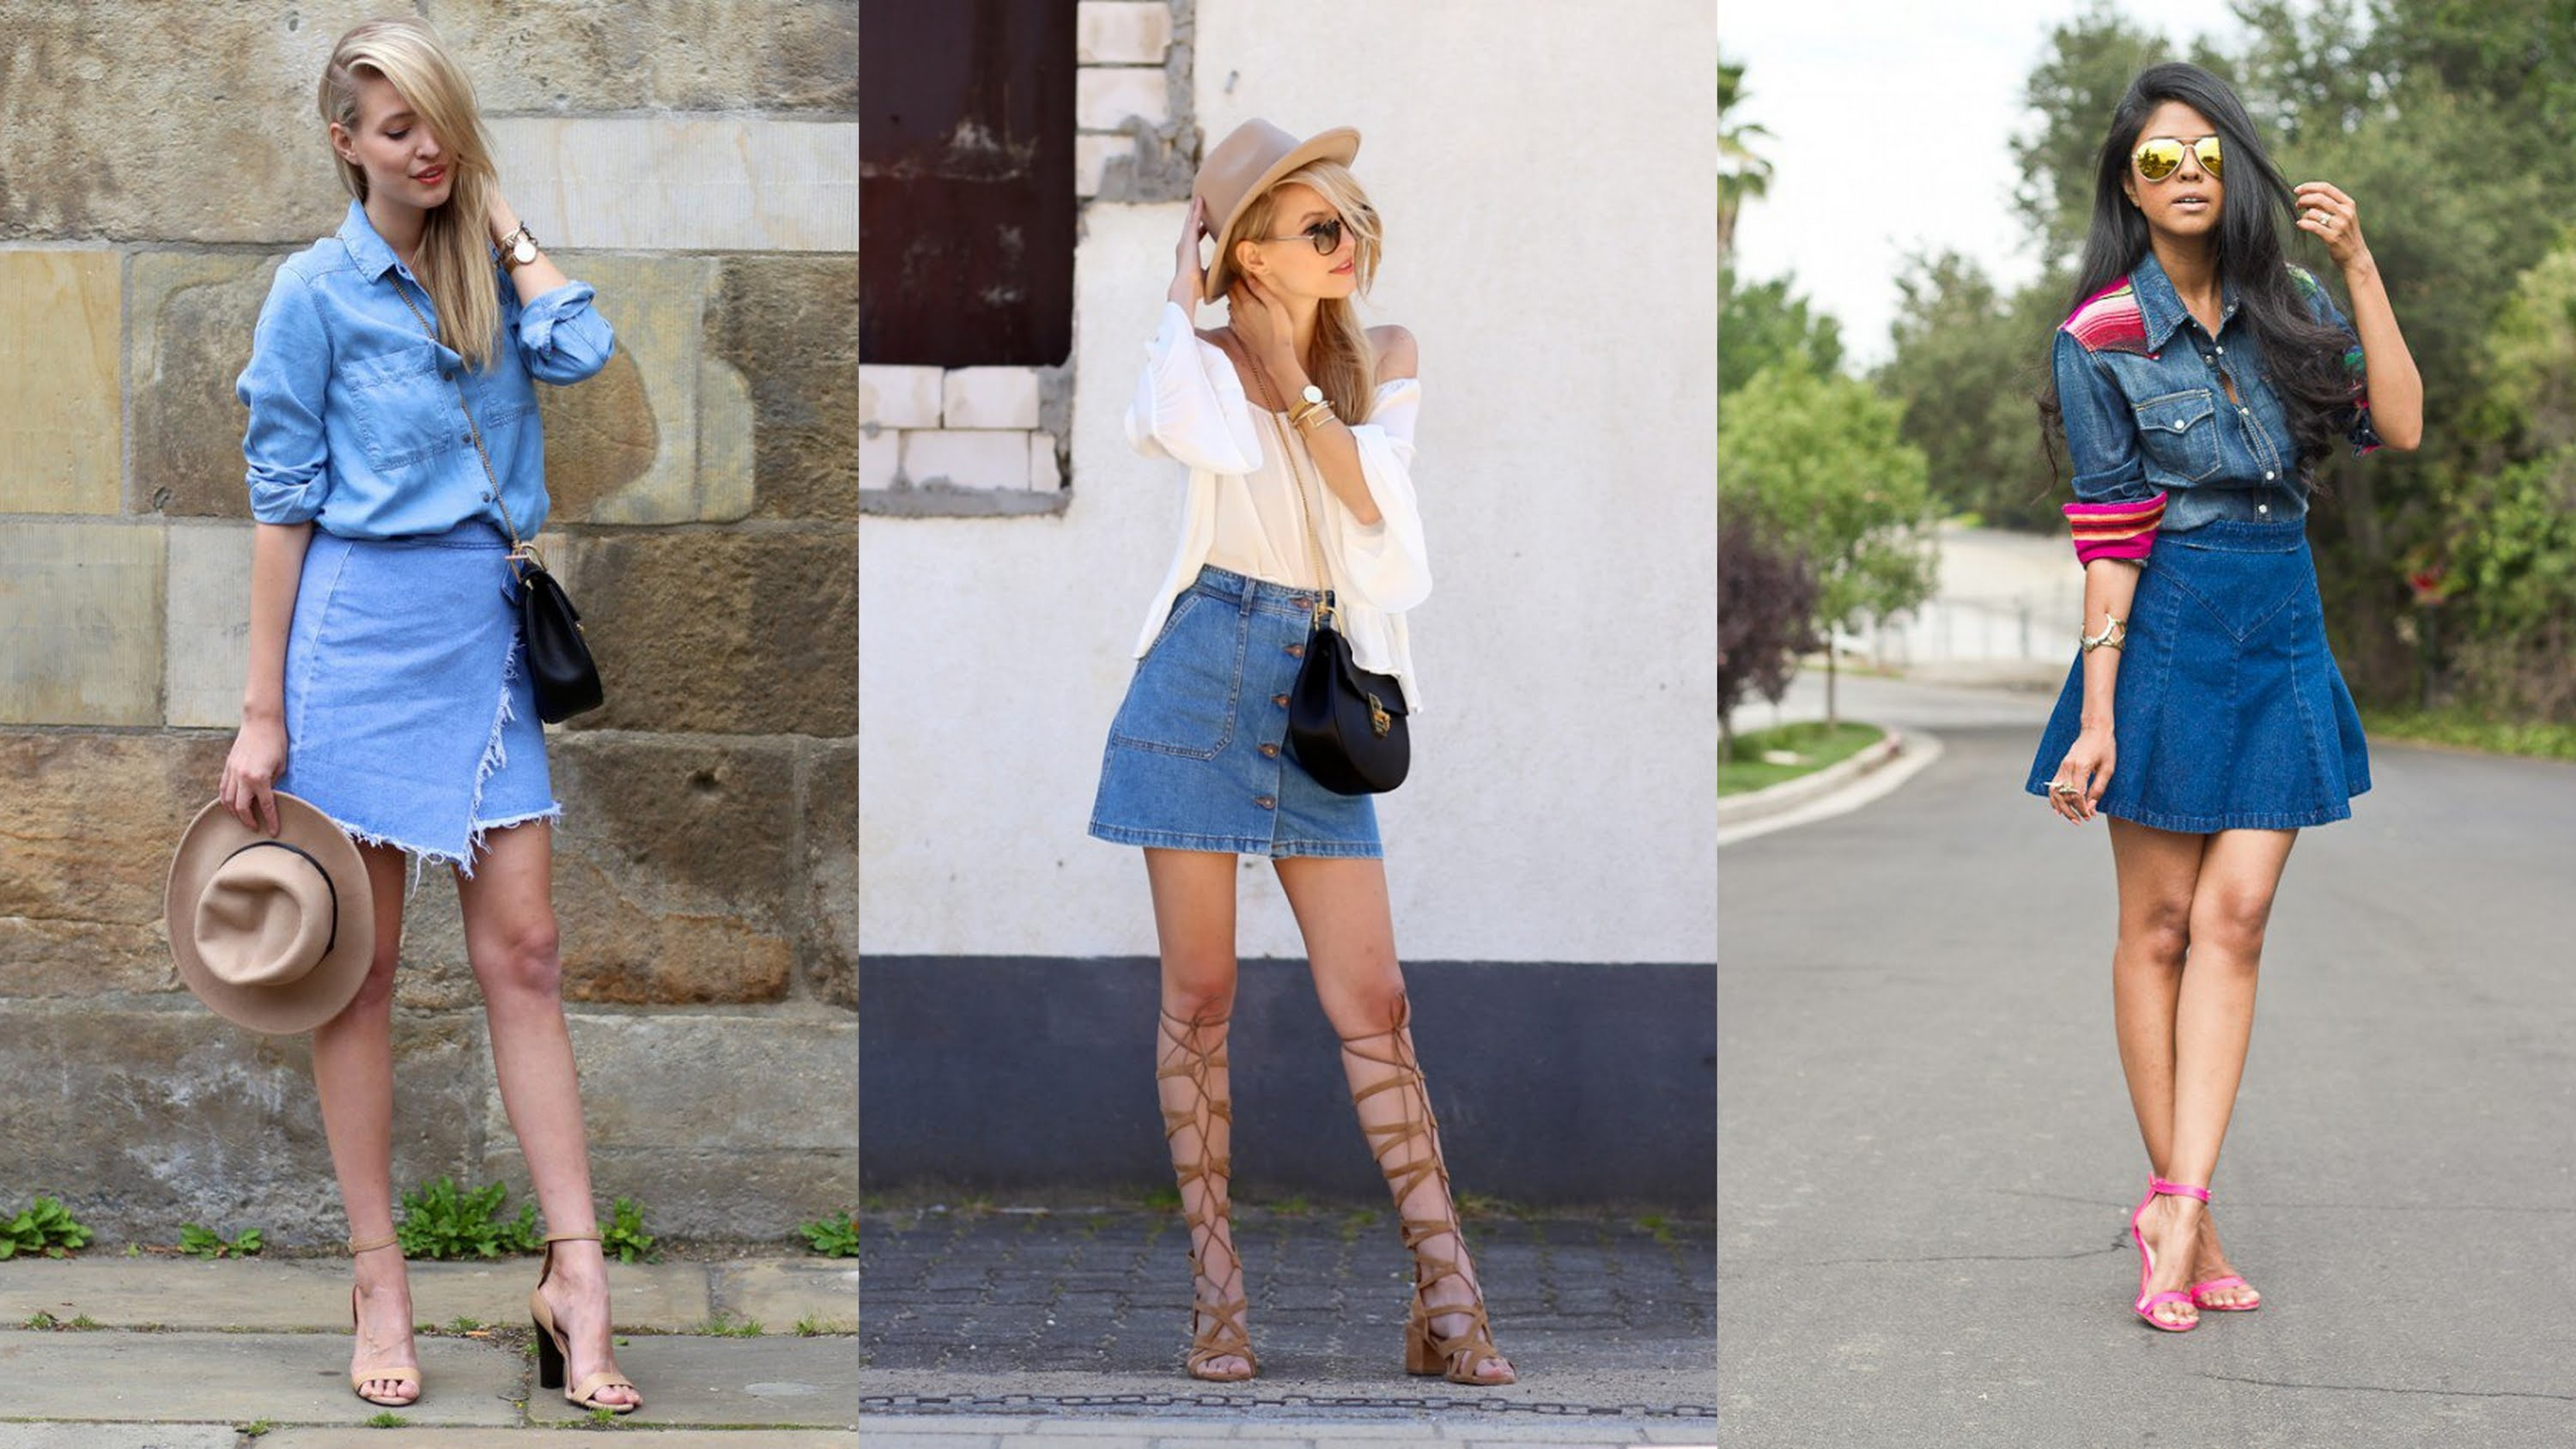 How to Style Denim Skirt Outfits | Style Wile